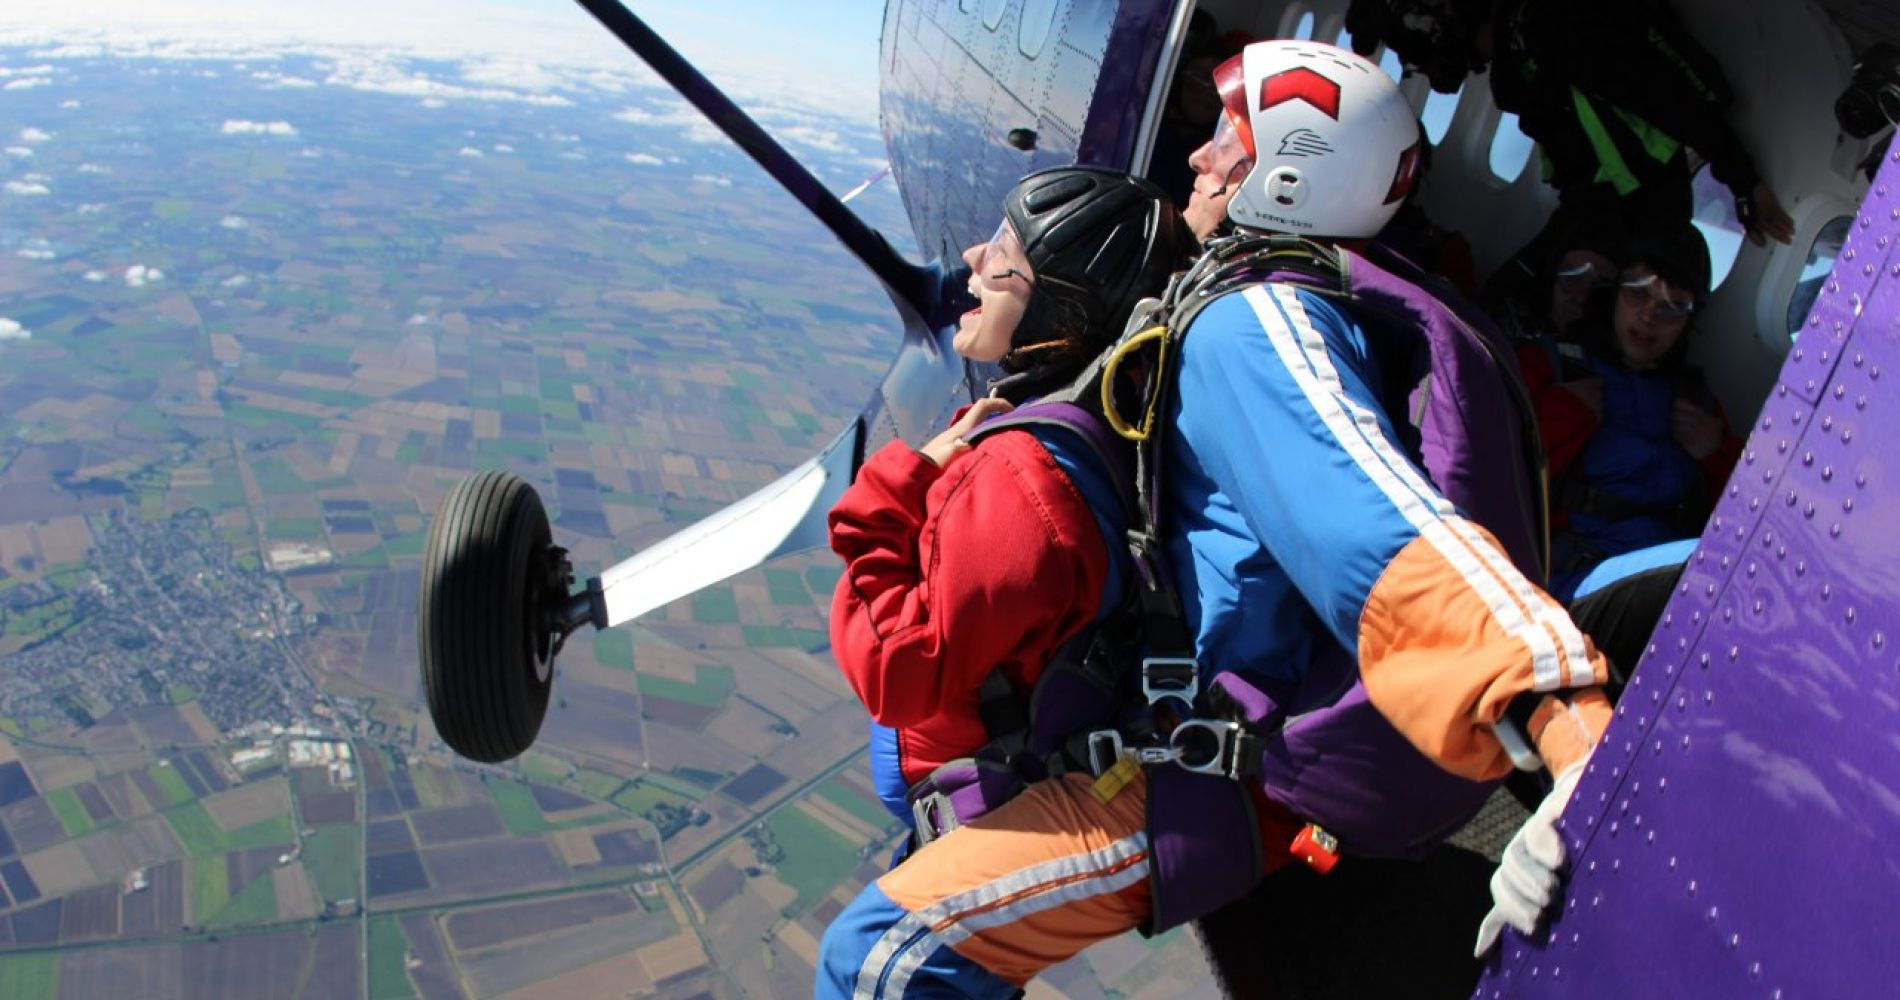 The Skydiving Experience in North London